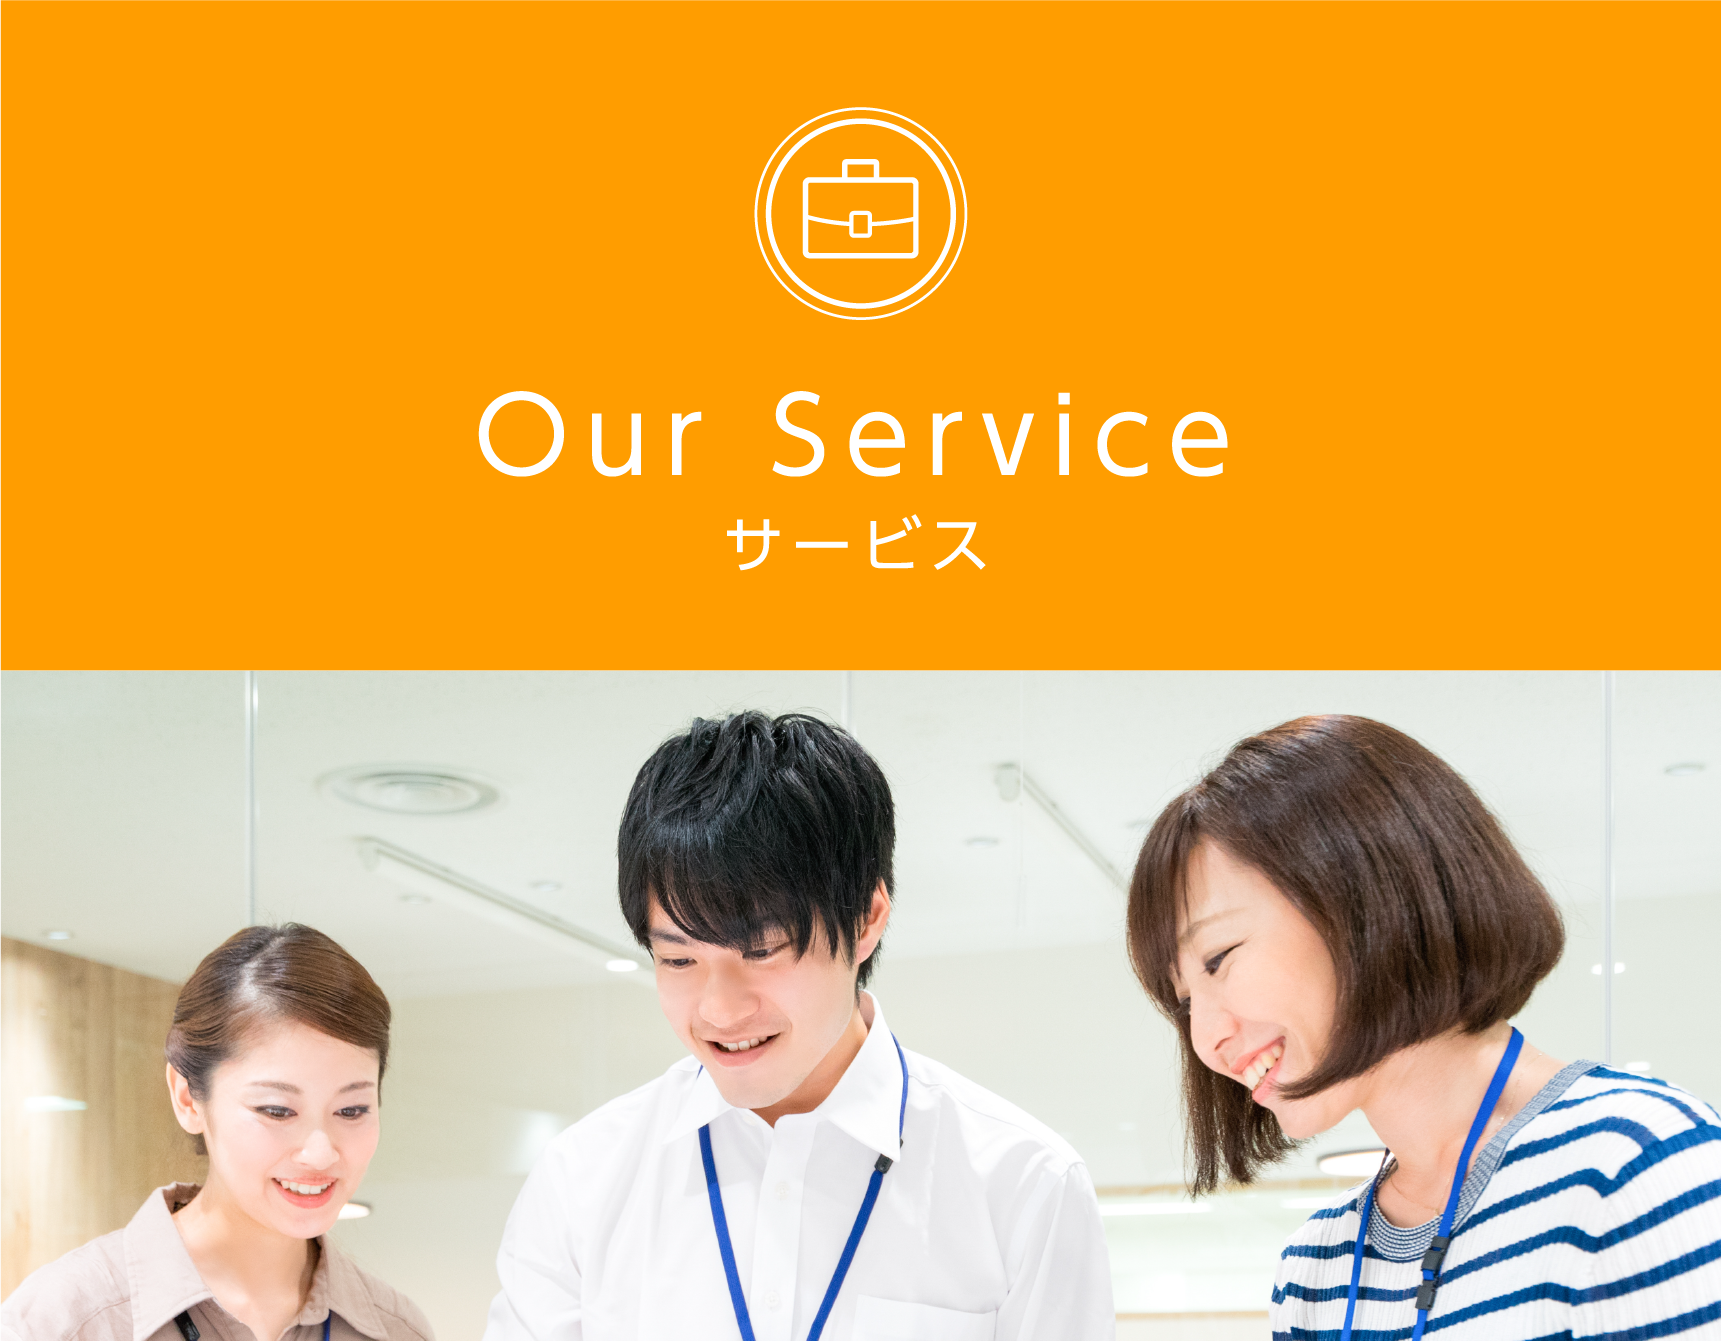 Our Service サービス